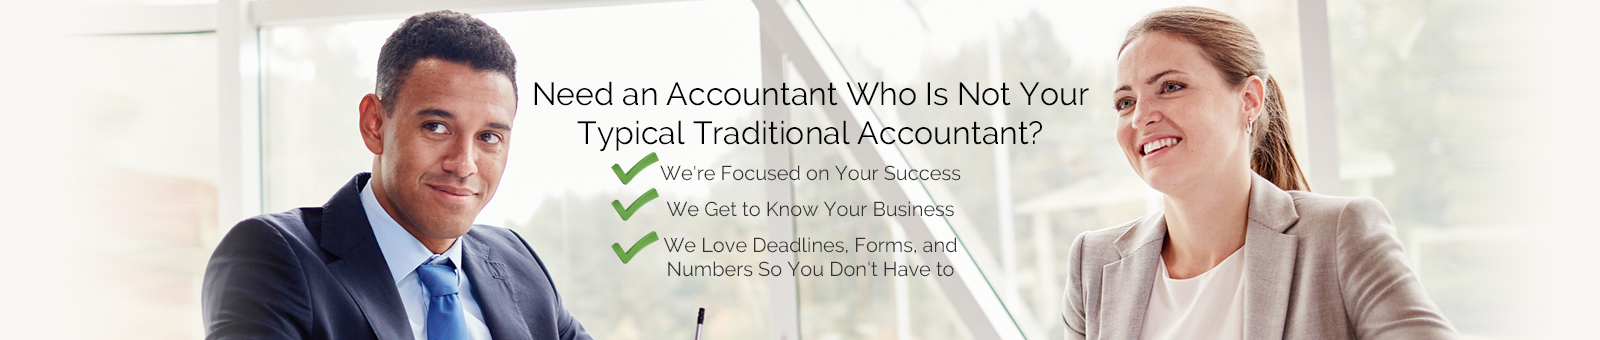 A business owner and Accountant talking